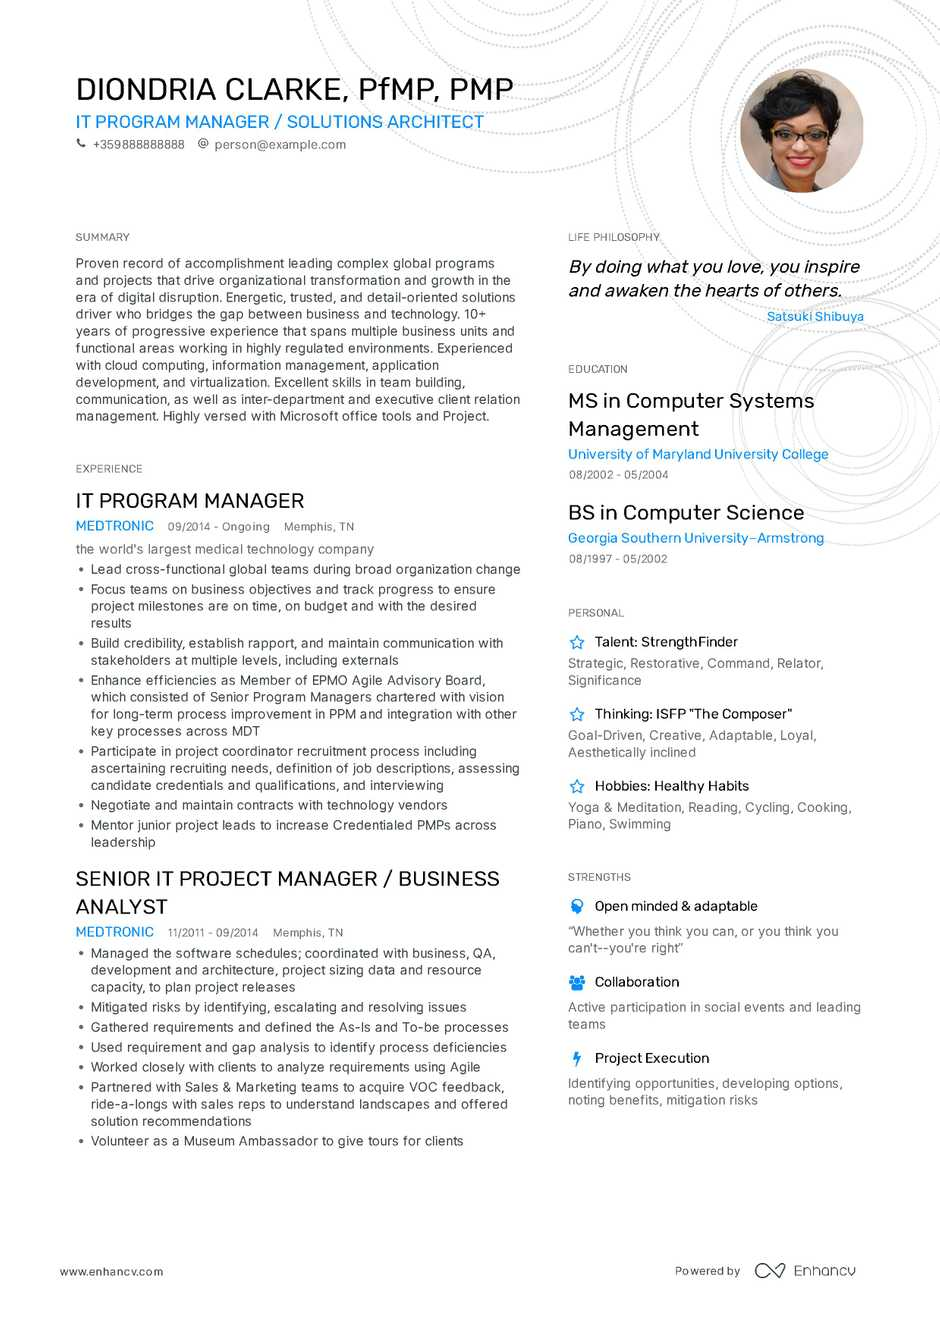 Professional Or Executive Resume Whats The Difference >> Program Manager Resume Example And Guide For 2019